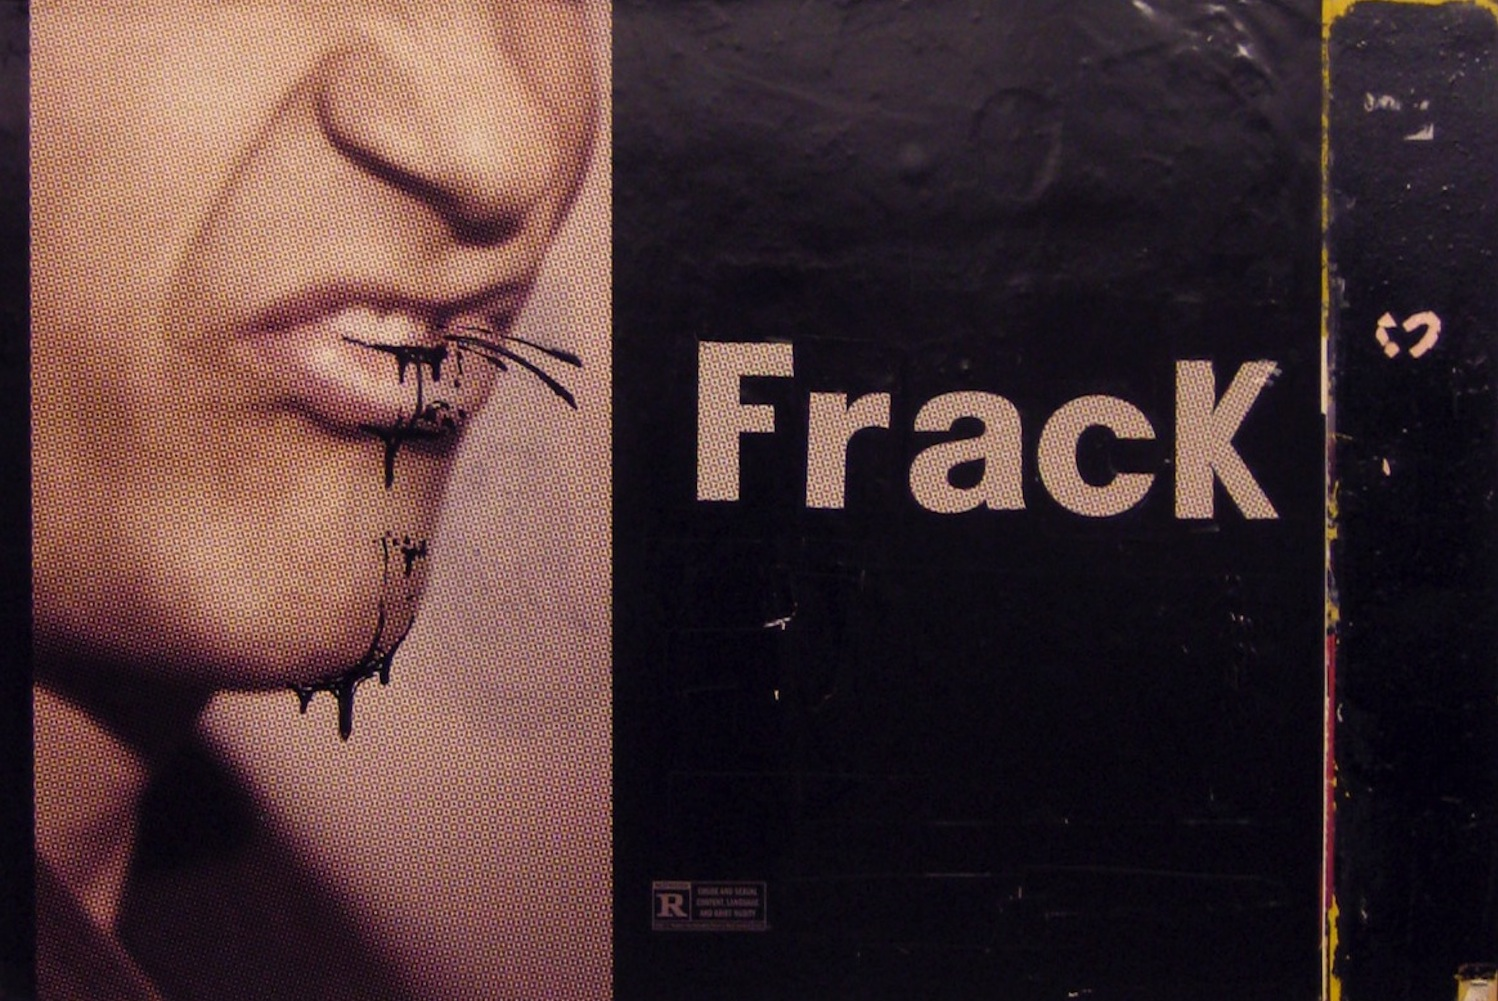 Feature Frack